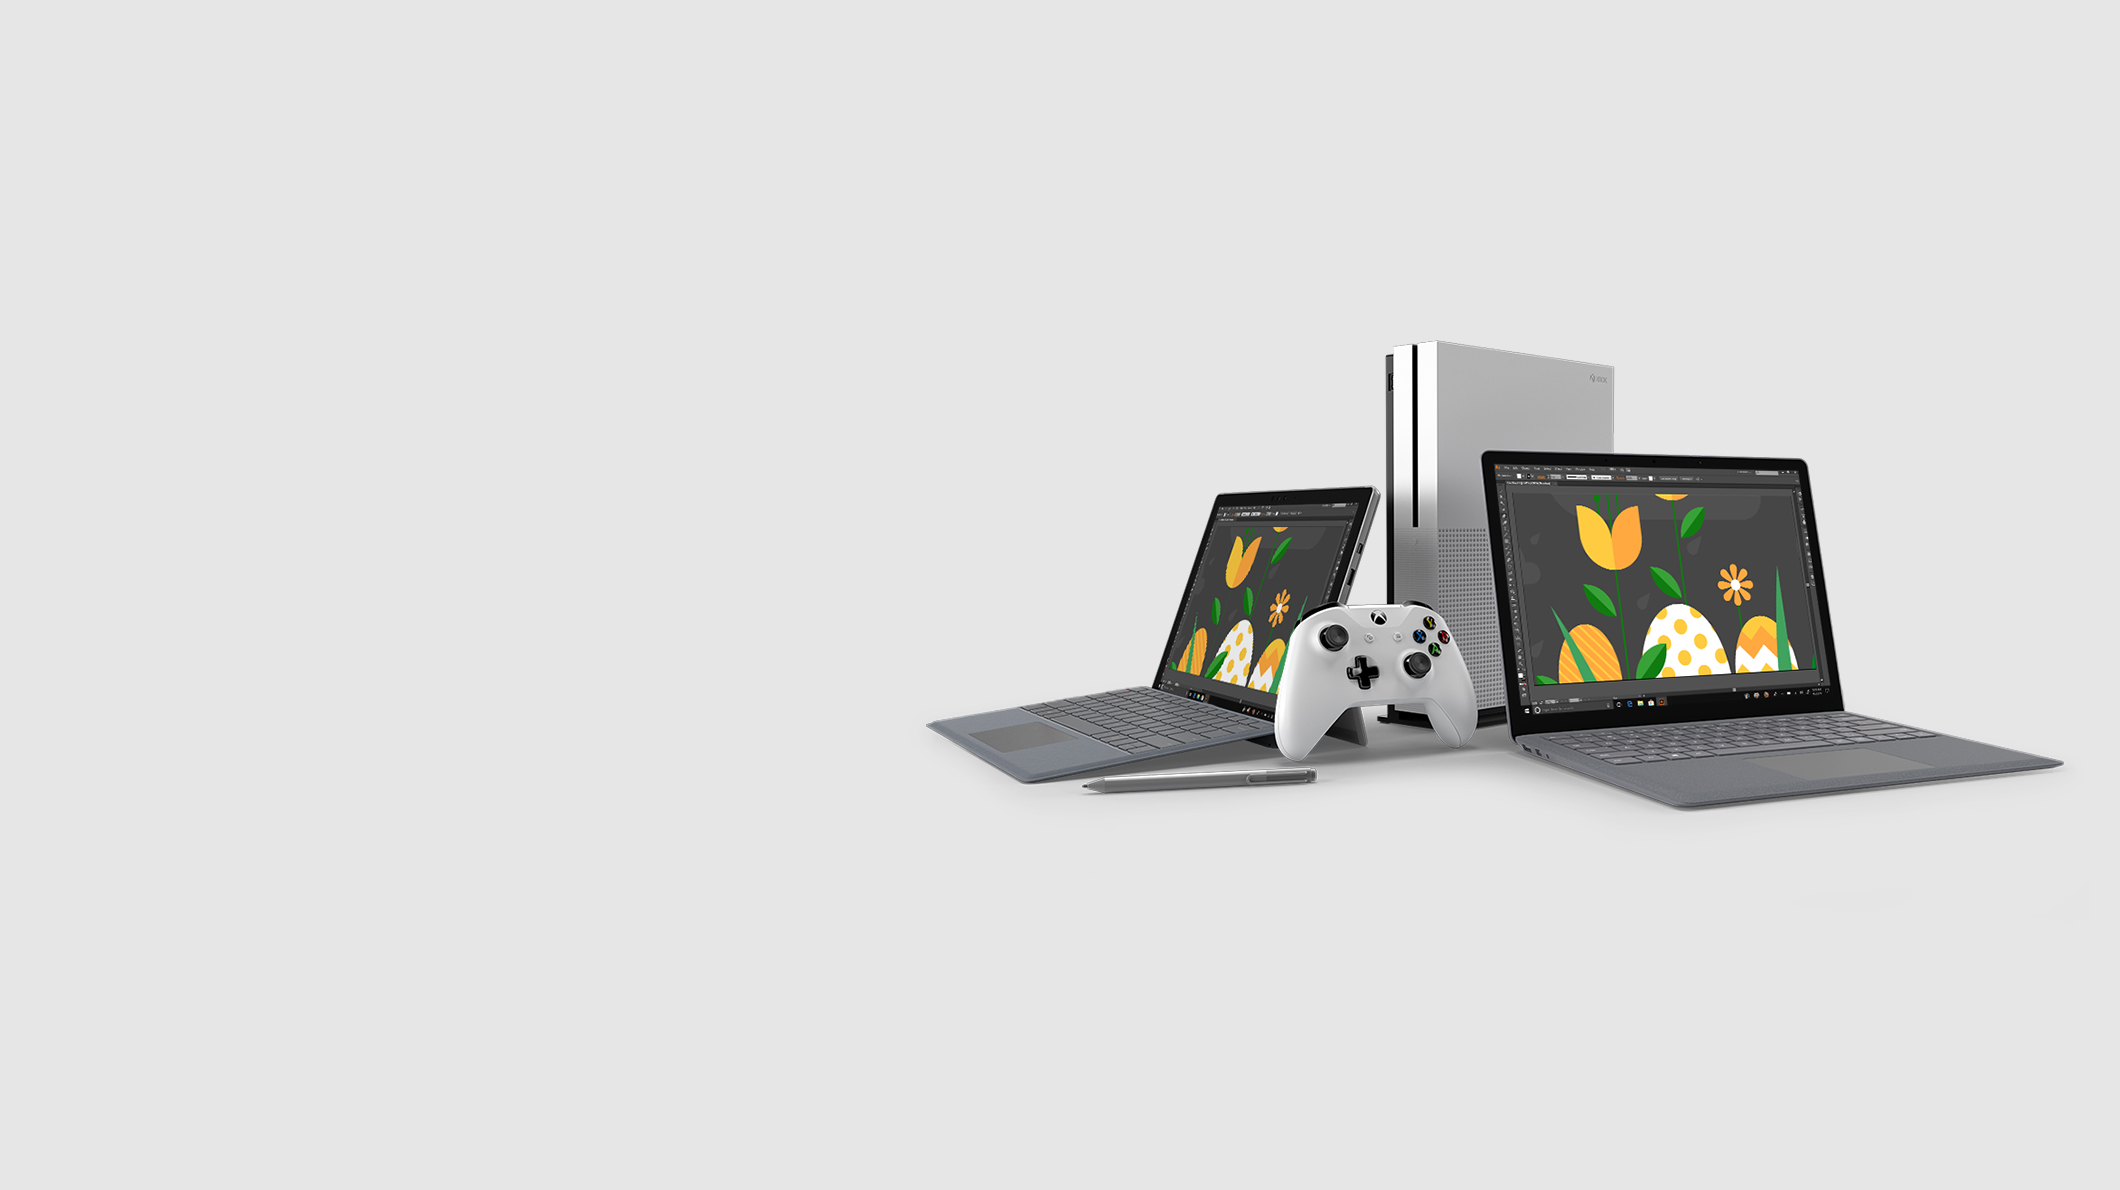 A Surface Pro 6 with Surface Pen, an Xbox controller, an Xbox One S and a Surface Laptop 2